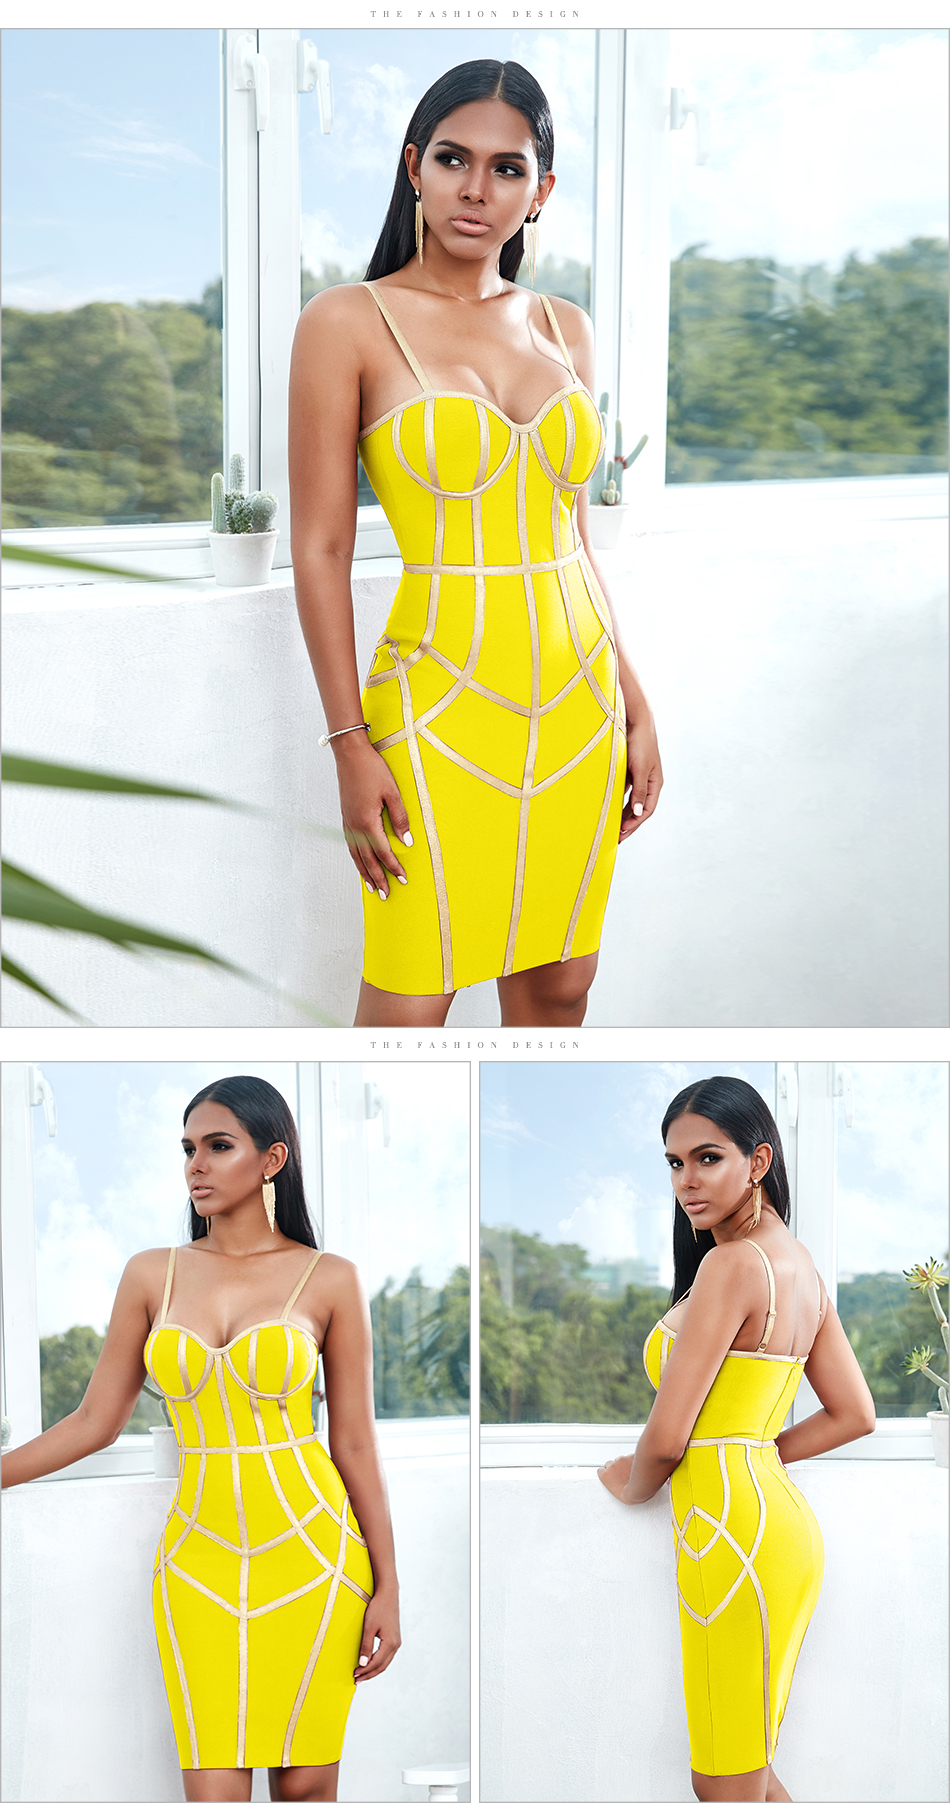 Hda0fa5d6c5454c3197a92de3a4516bfeB - Adyce New Summer Bodycon Bandage Dress Women Vestido Sexy Spaghetti Strap Sleeveless Club Hot Celebrity Evening Party Dress